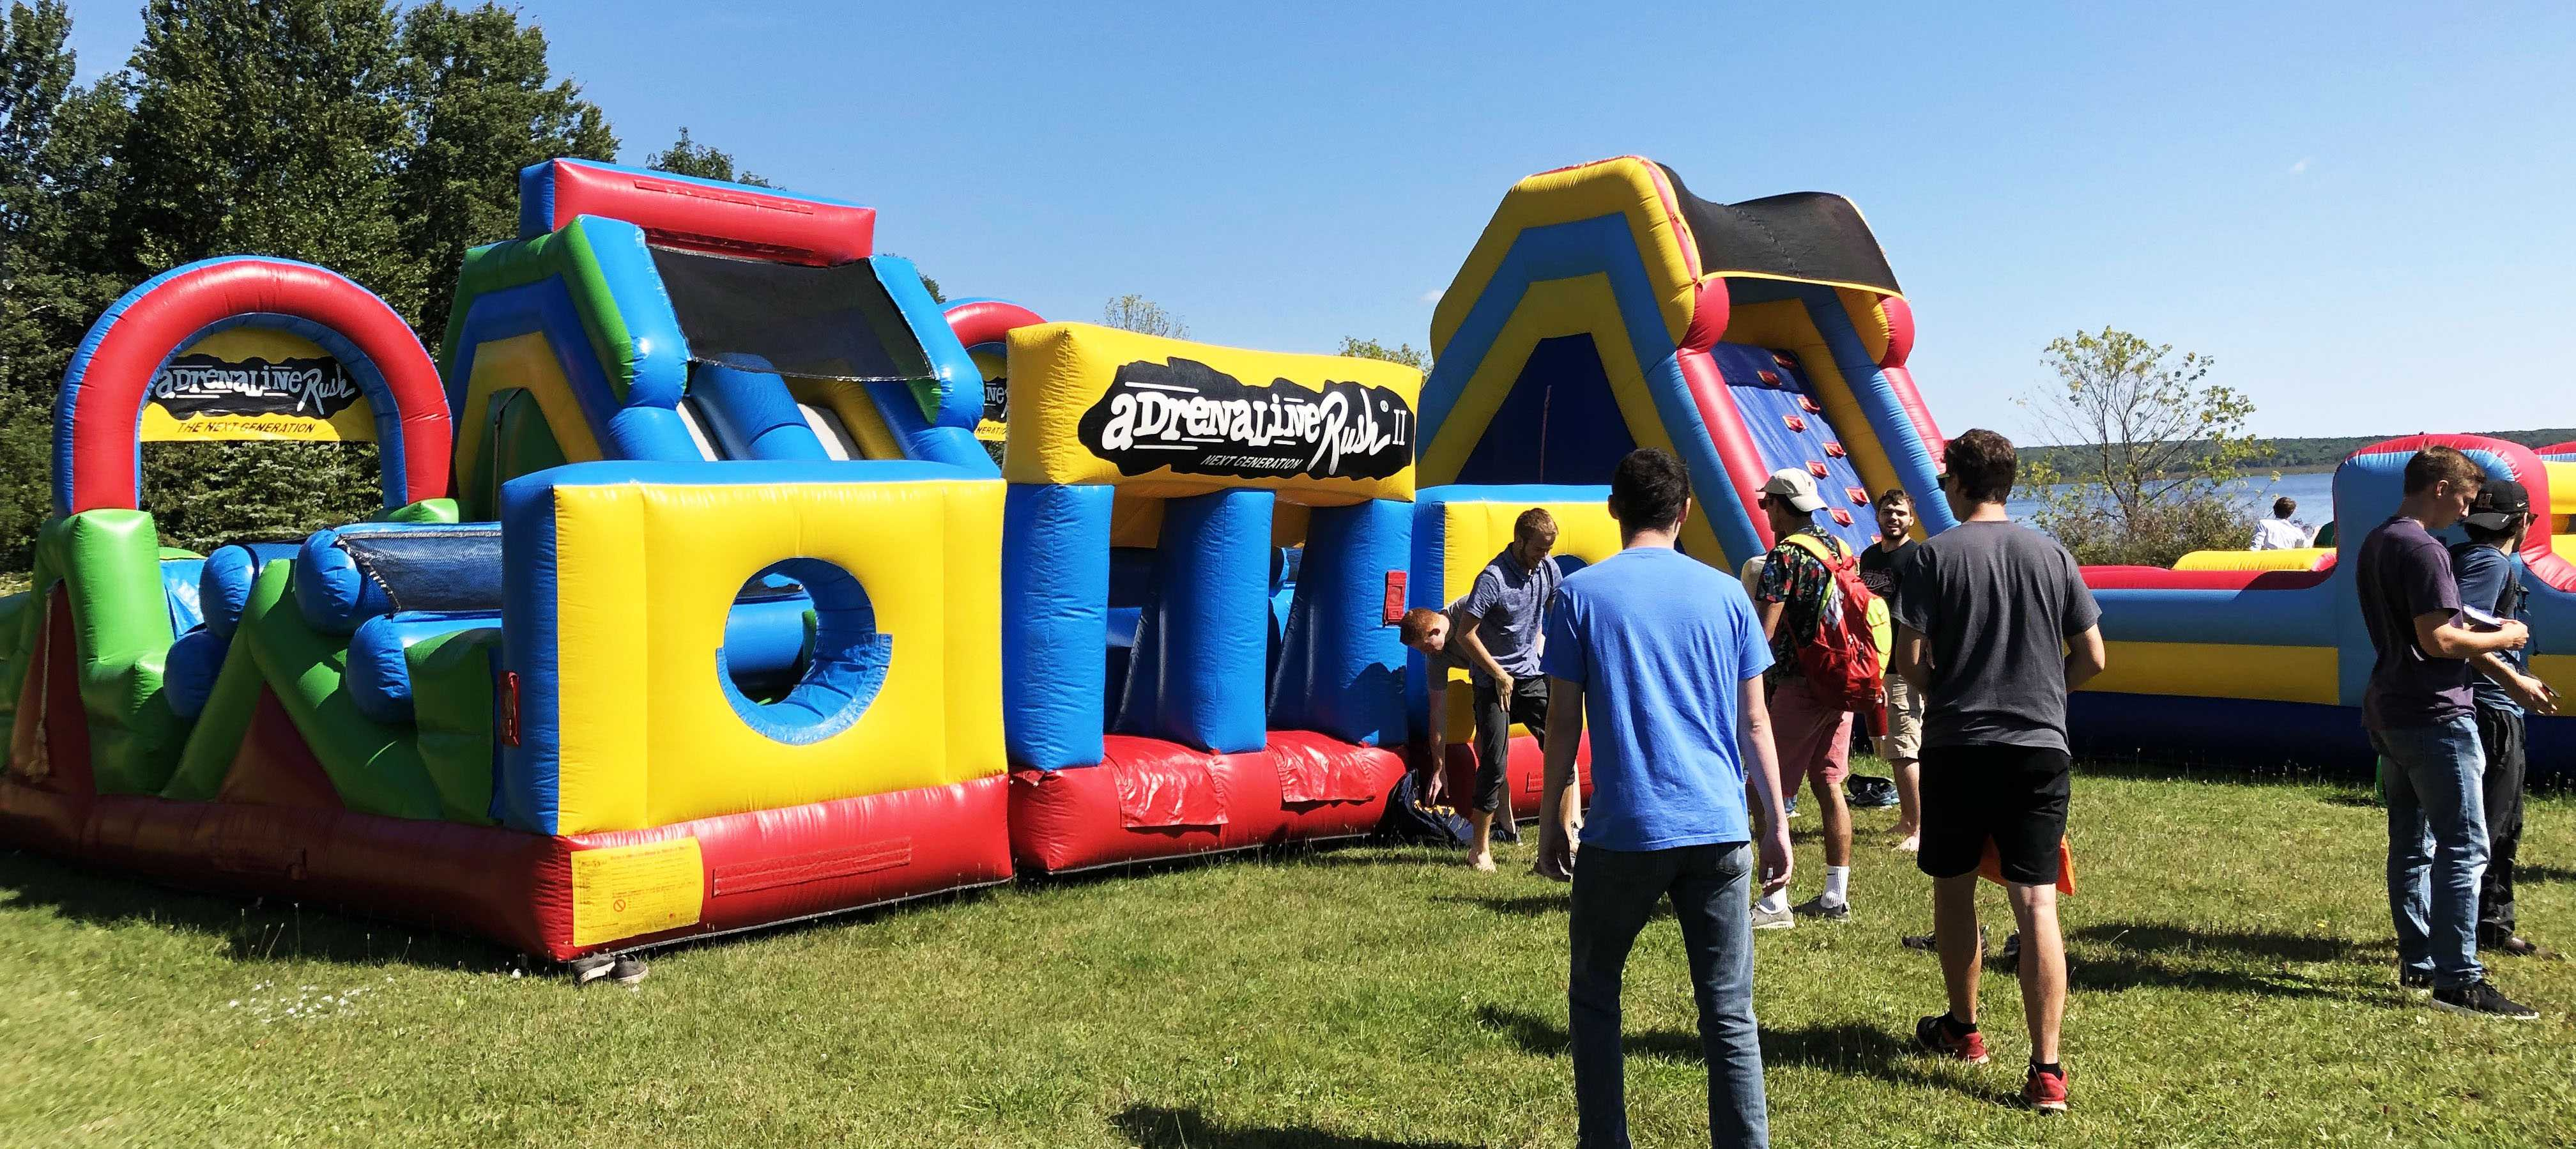 Participants at K-Day had the opportunity to tumble about in the inflatable obstacle course, attempting to beat each other to the finish.